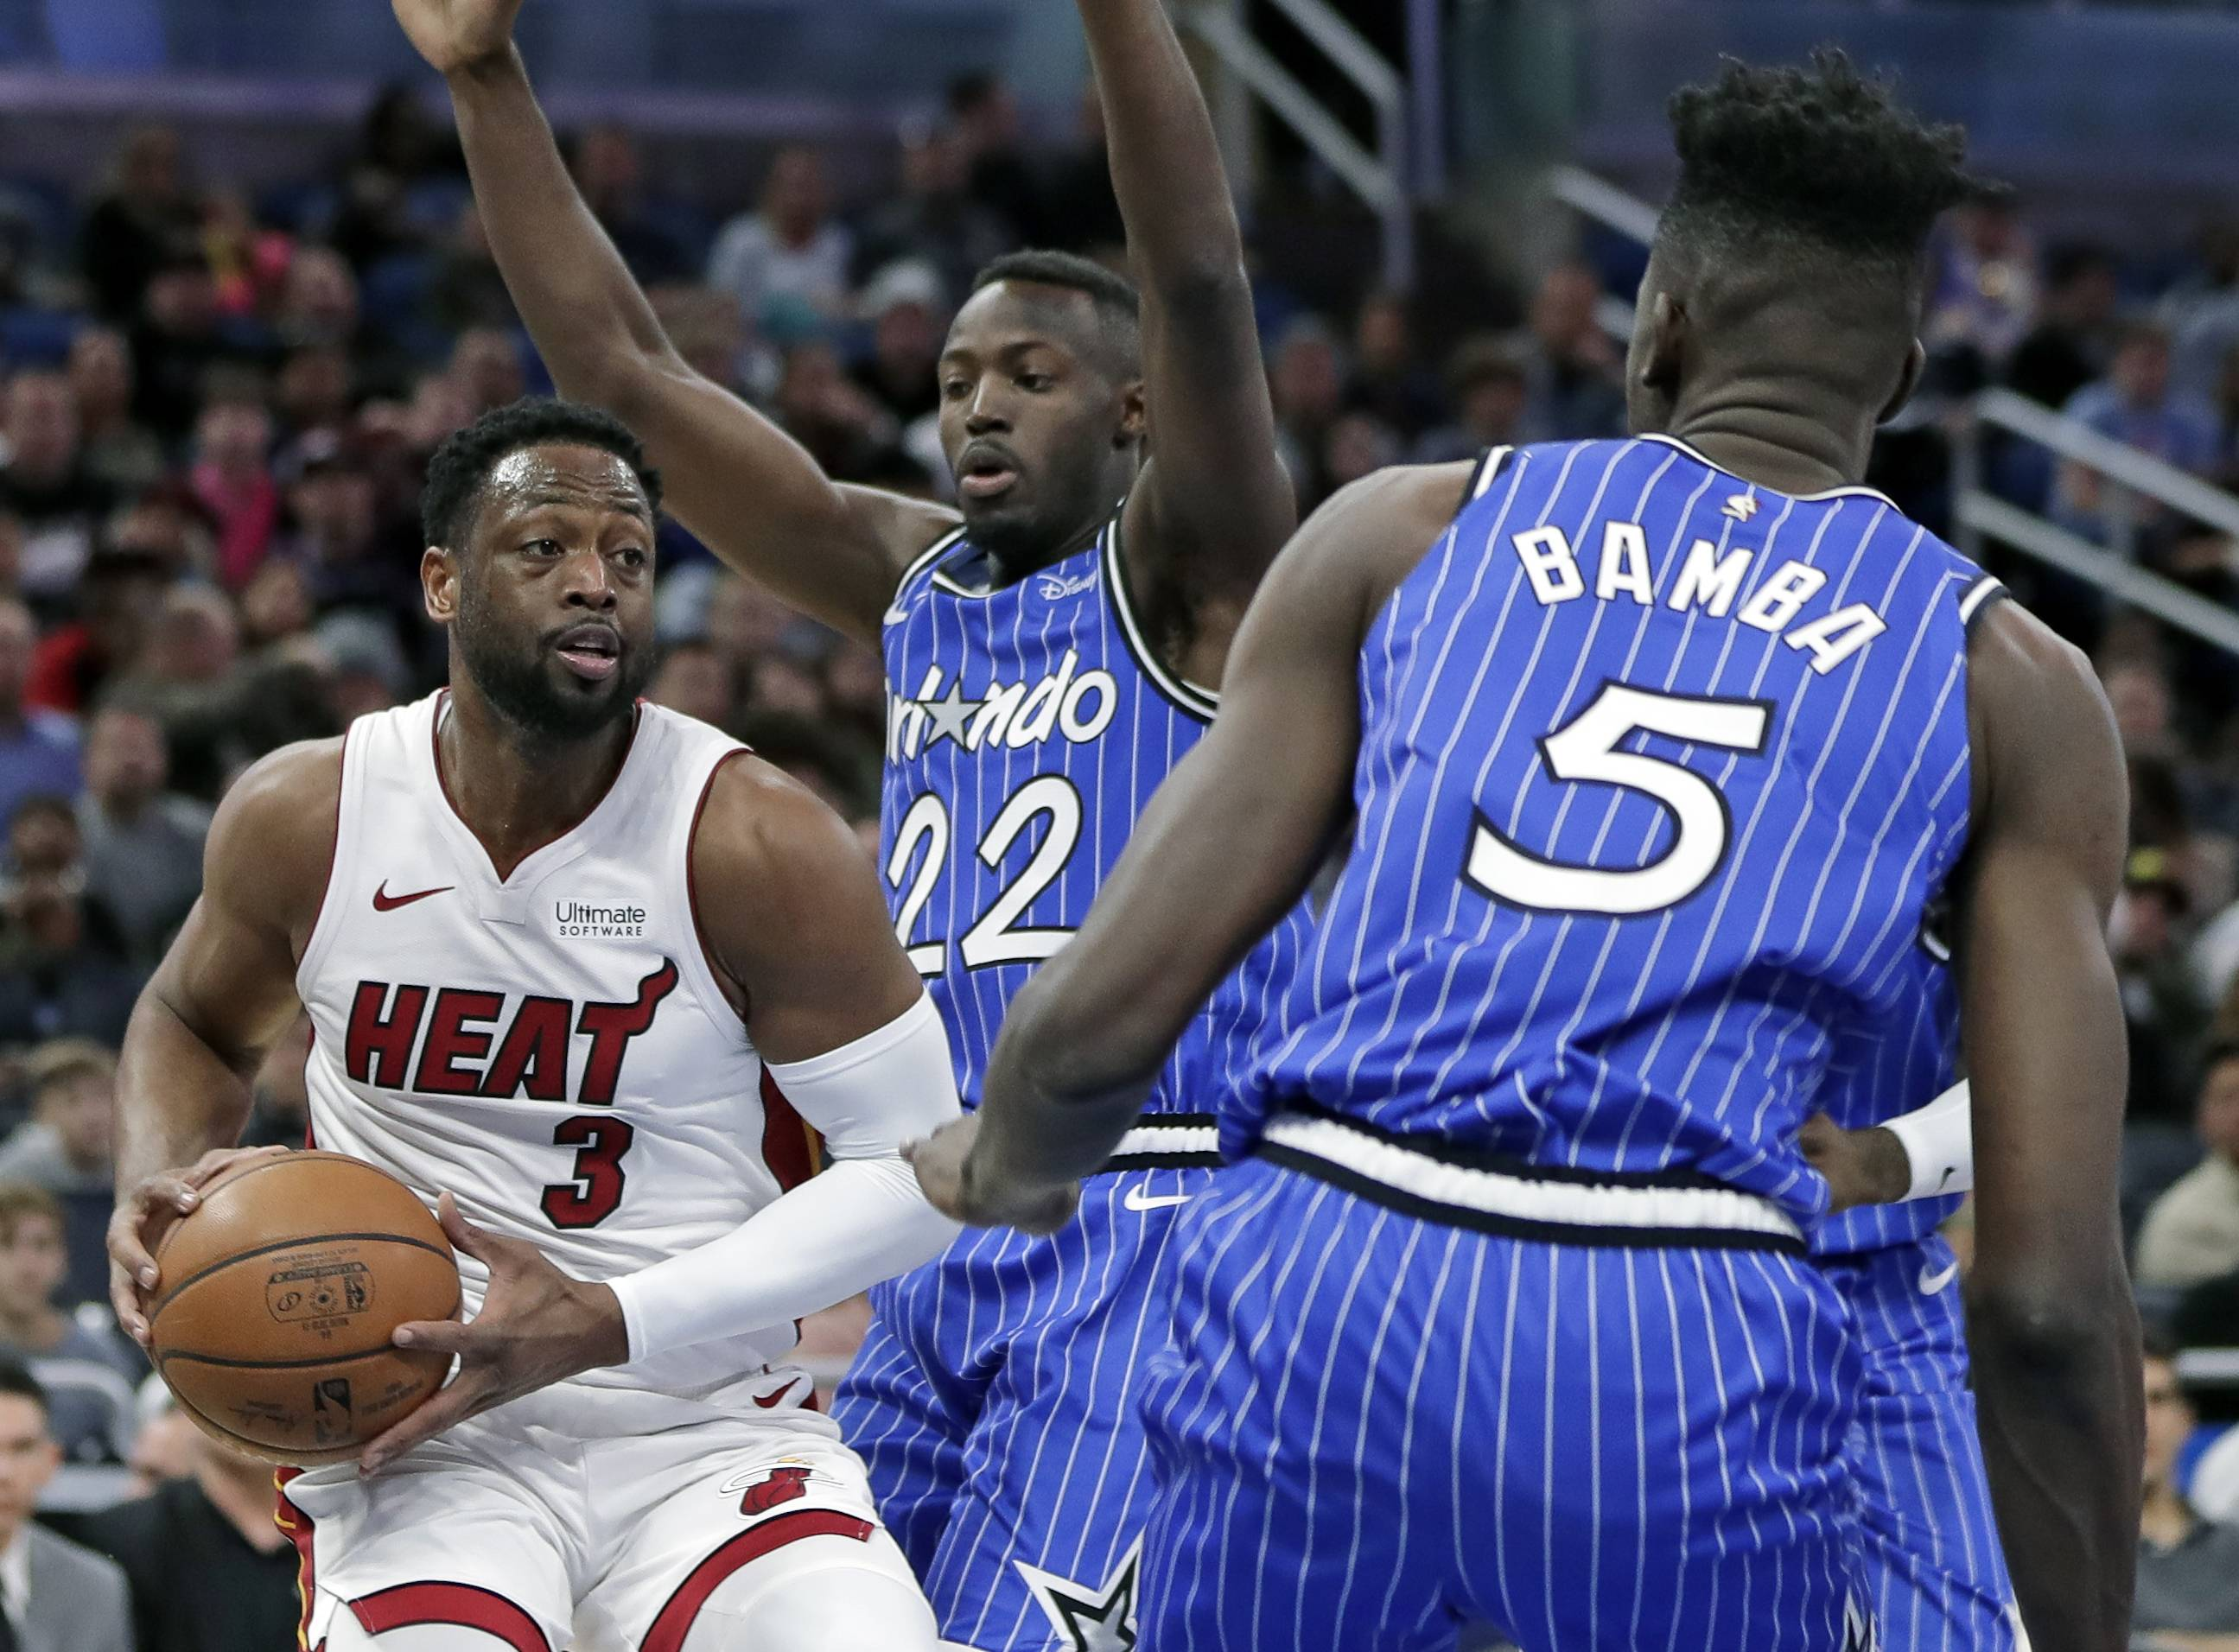 The Miami Heat's Dwyane Wade gets in a traffic jam in a December game at Orlando. He returns to the United Center for his final game in his hometown Saturday night.